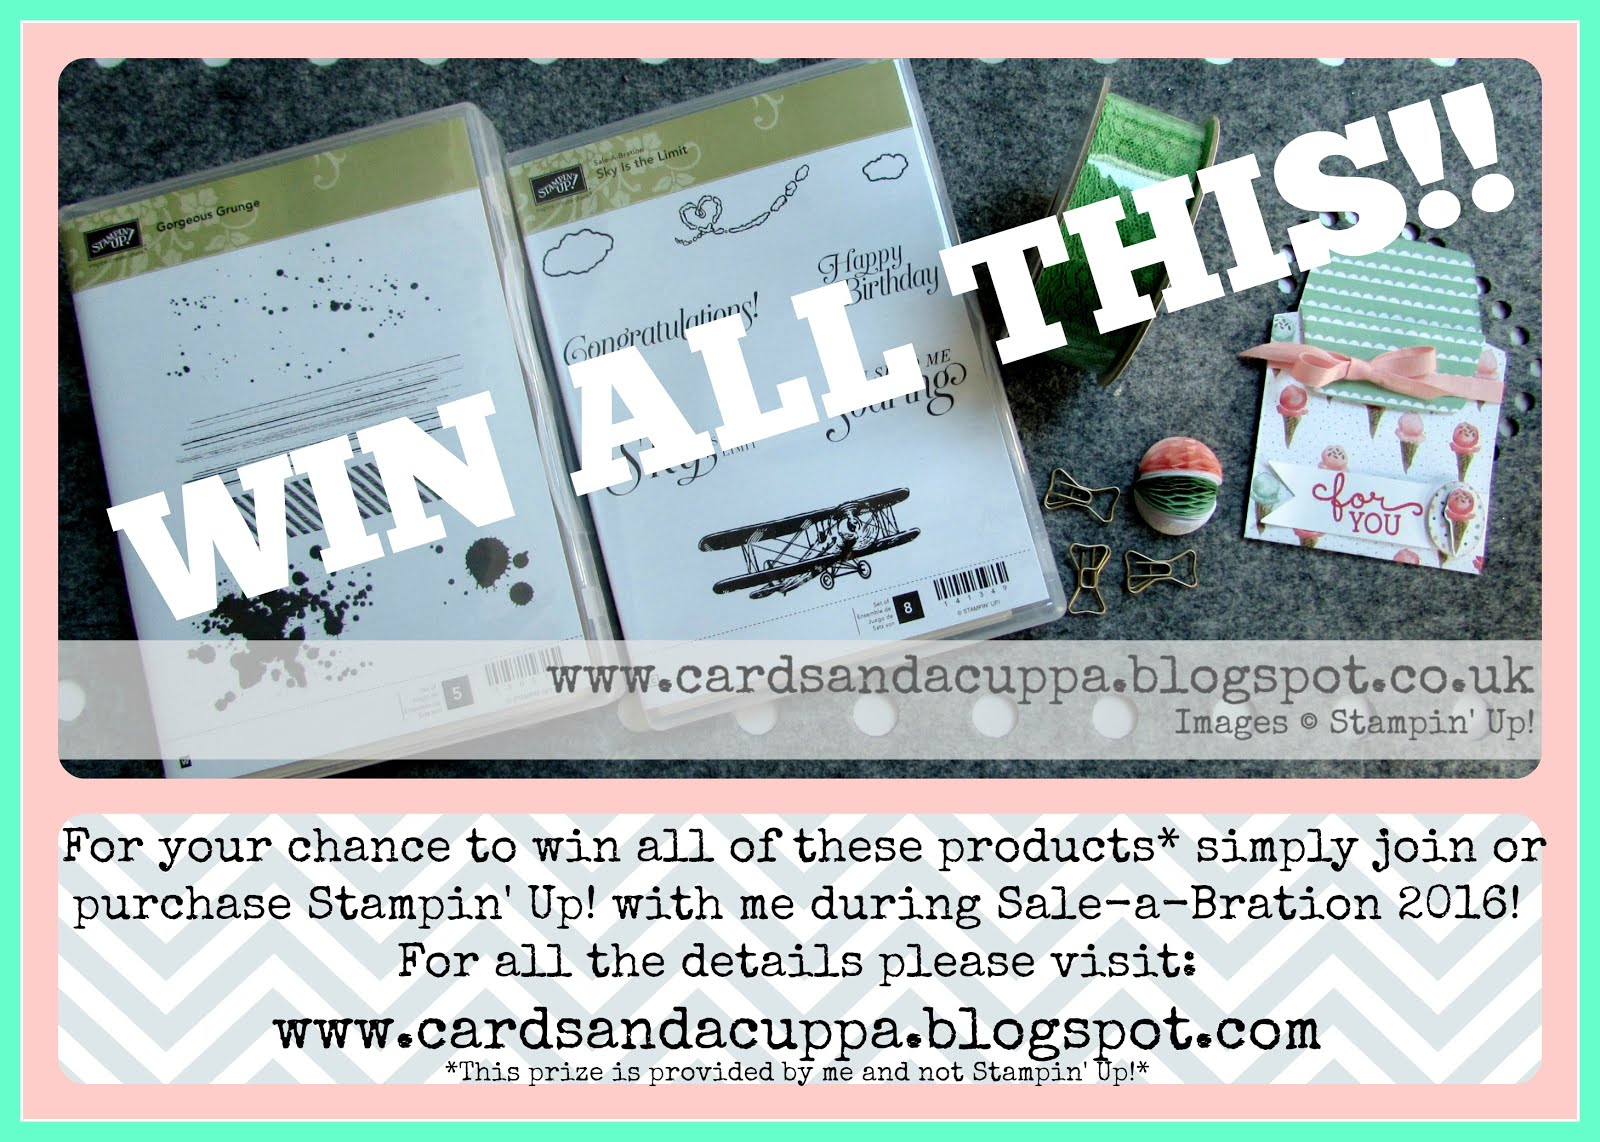 Sale-a-Bration 2016 Prize Draw when you buy Stampin' Up! with Cards and a Cuppa